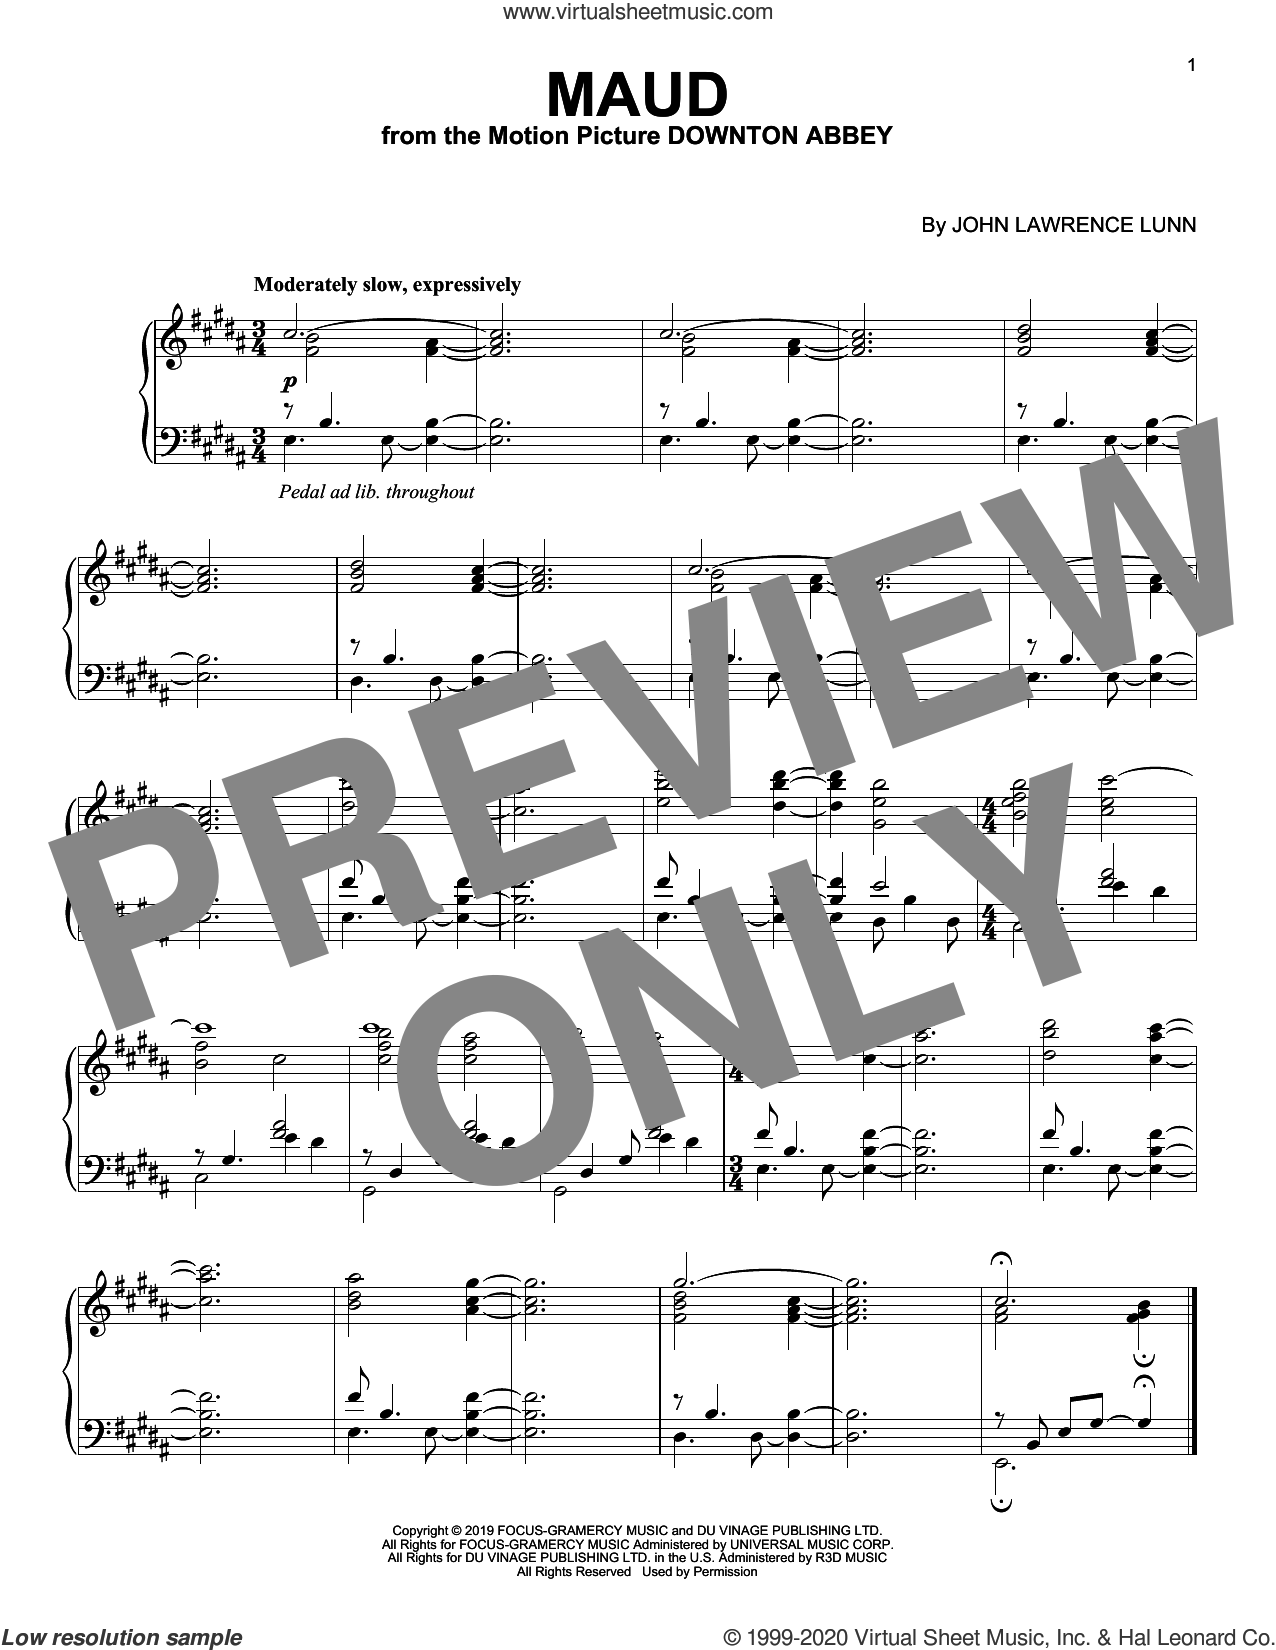 Maud (from the Motion Picture Downton Abbey) sheet music for piano solo by John Lunn, intermediate skill level